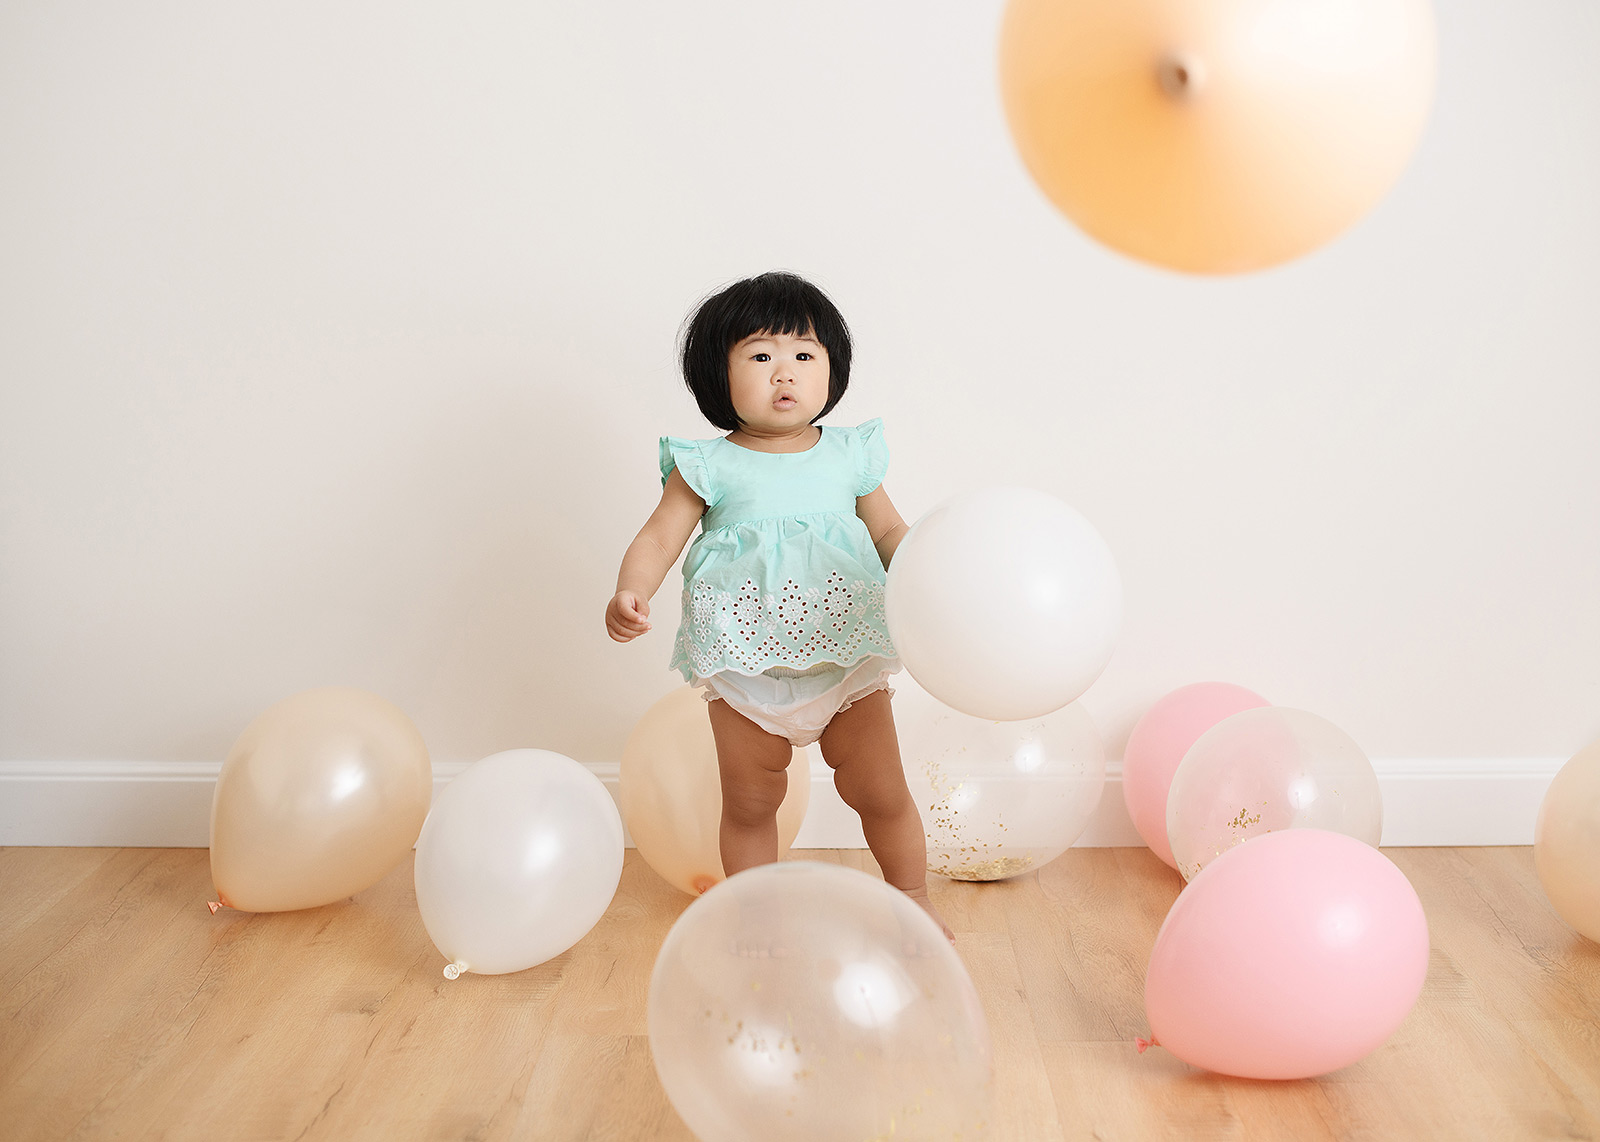 Baby girl in a sea of pastel balloons